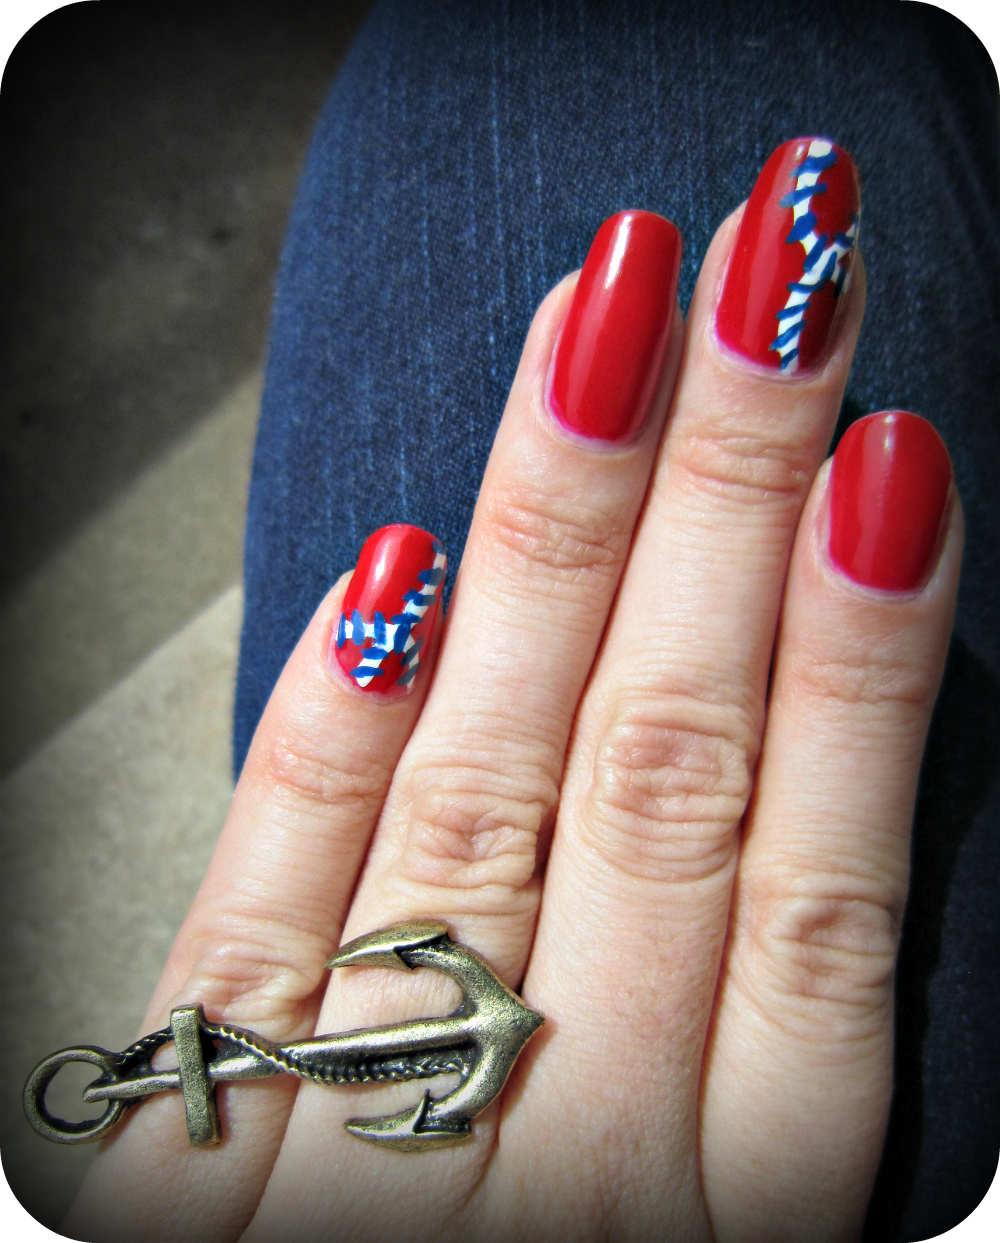 Concrete And Nail Polish Striped Nail Art: Concrete And Nail Polish: Nautical Nails